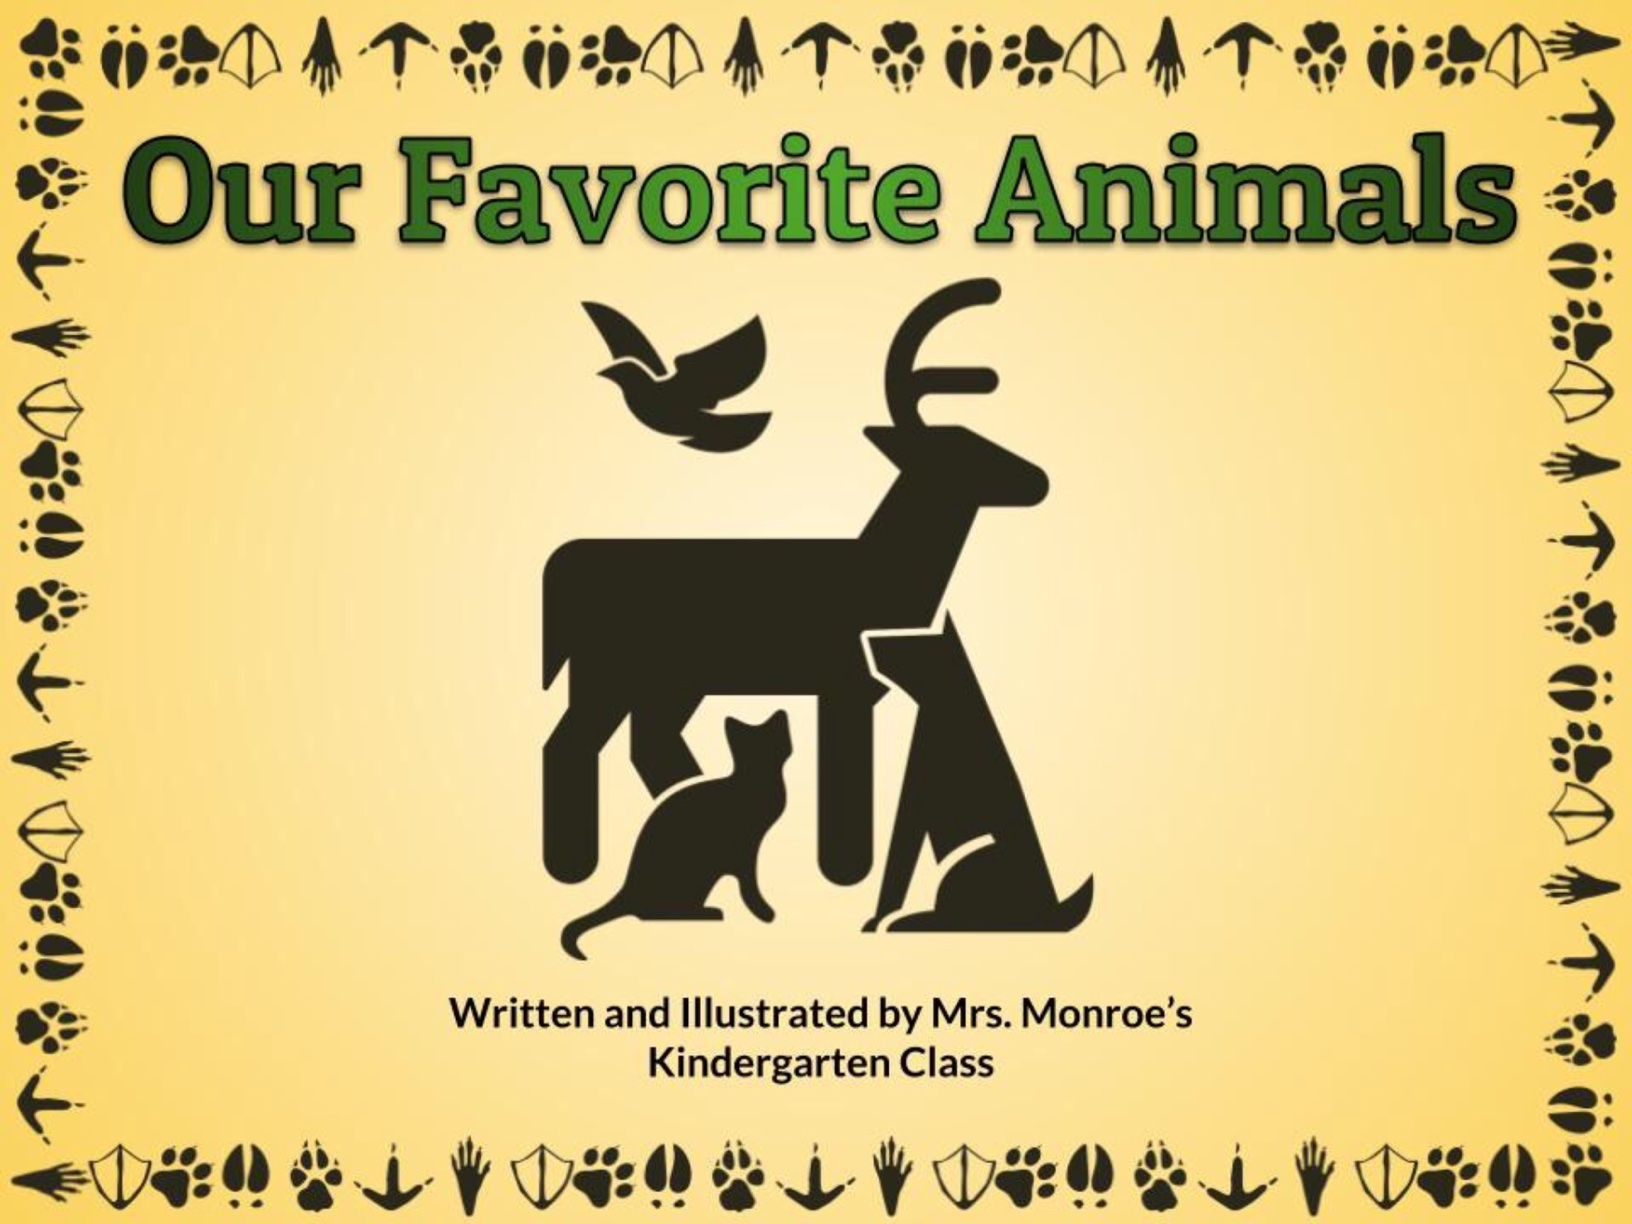 Mrs. Monroe's Class: Animals